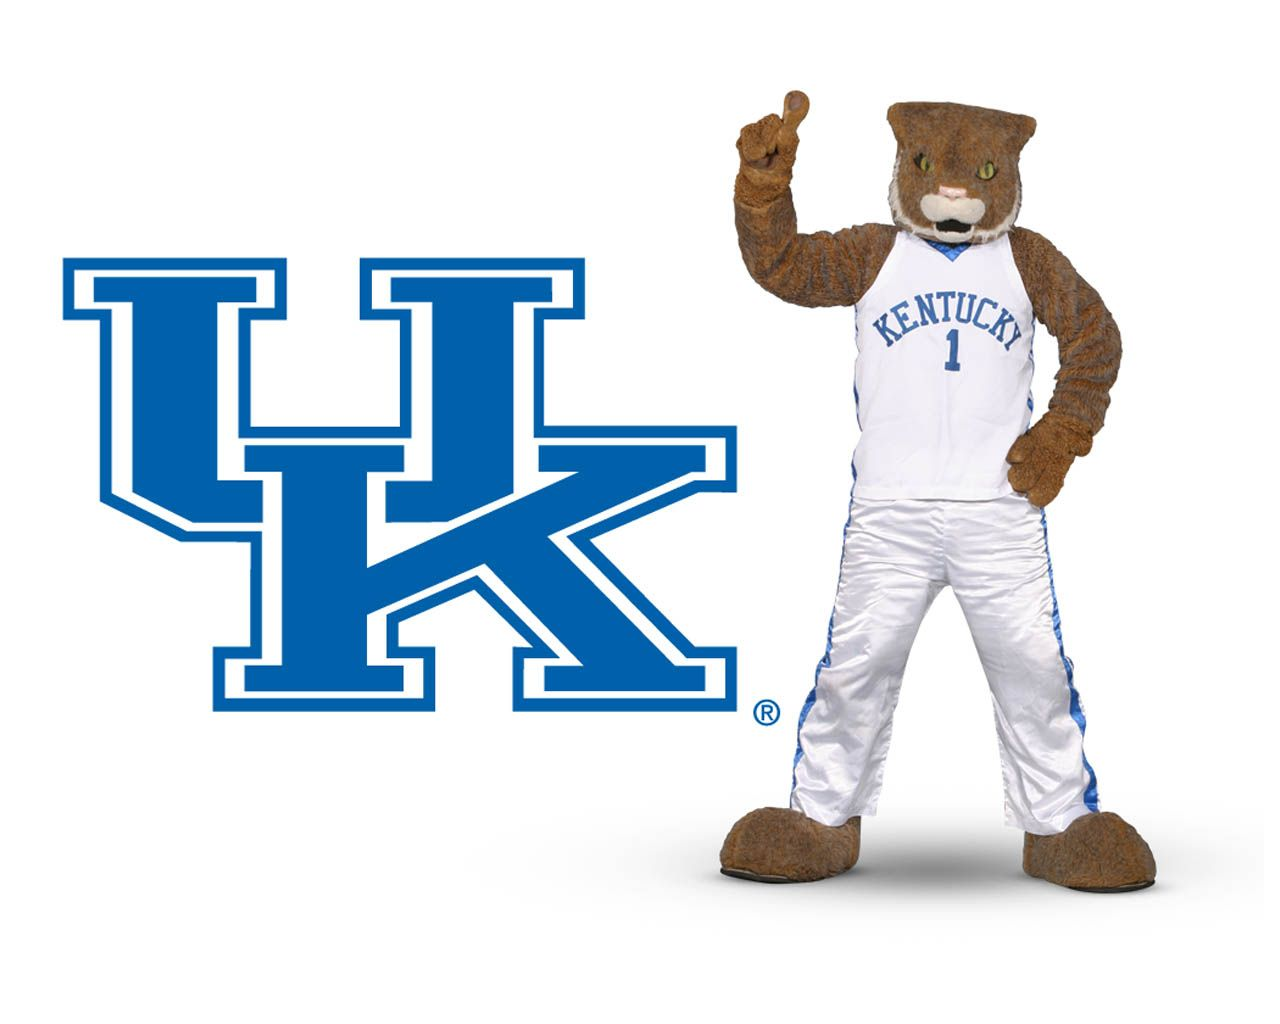 Kentucky Basketball Images Go Big Blue Hd Wallpaper And: Wildcat Wallpapers - Put The